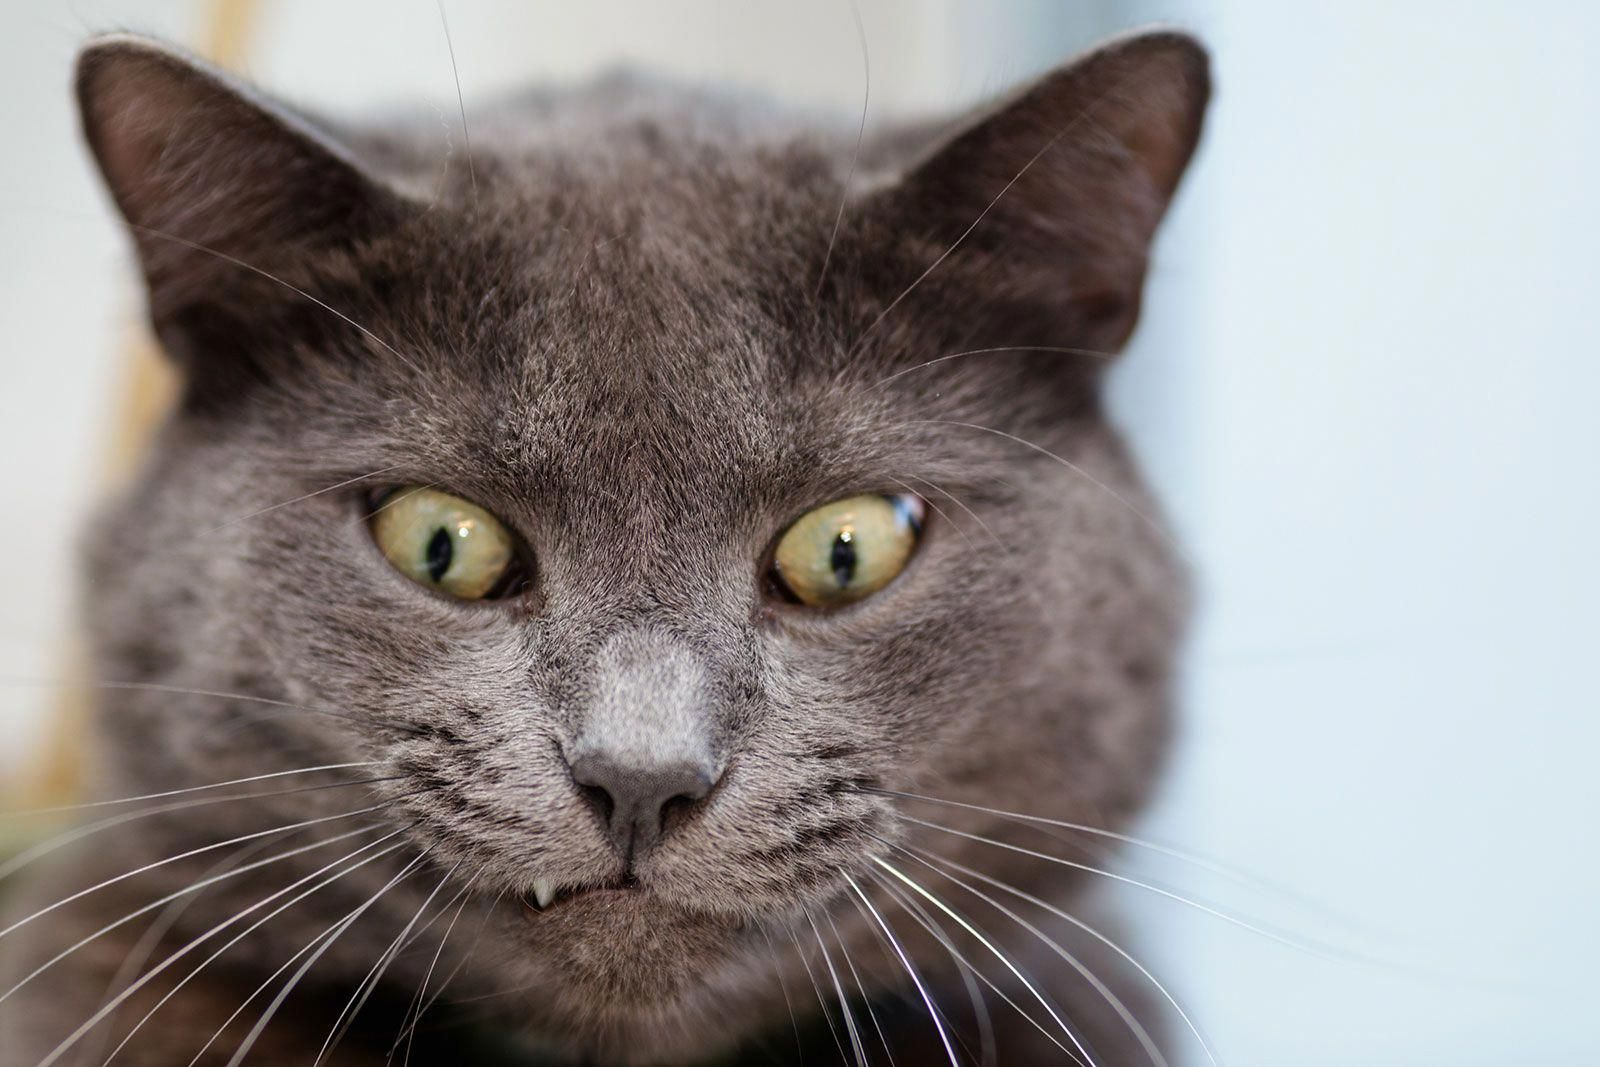 Gassy Pets Excessive Tooting May Be A Problem Fleashampooforcats Funny Cat Faces Funny Cat Videos Crazy Cats